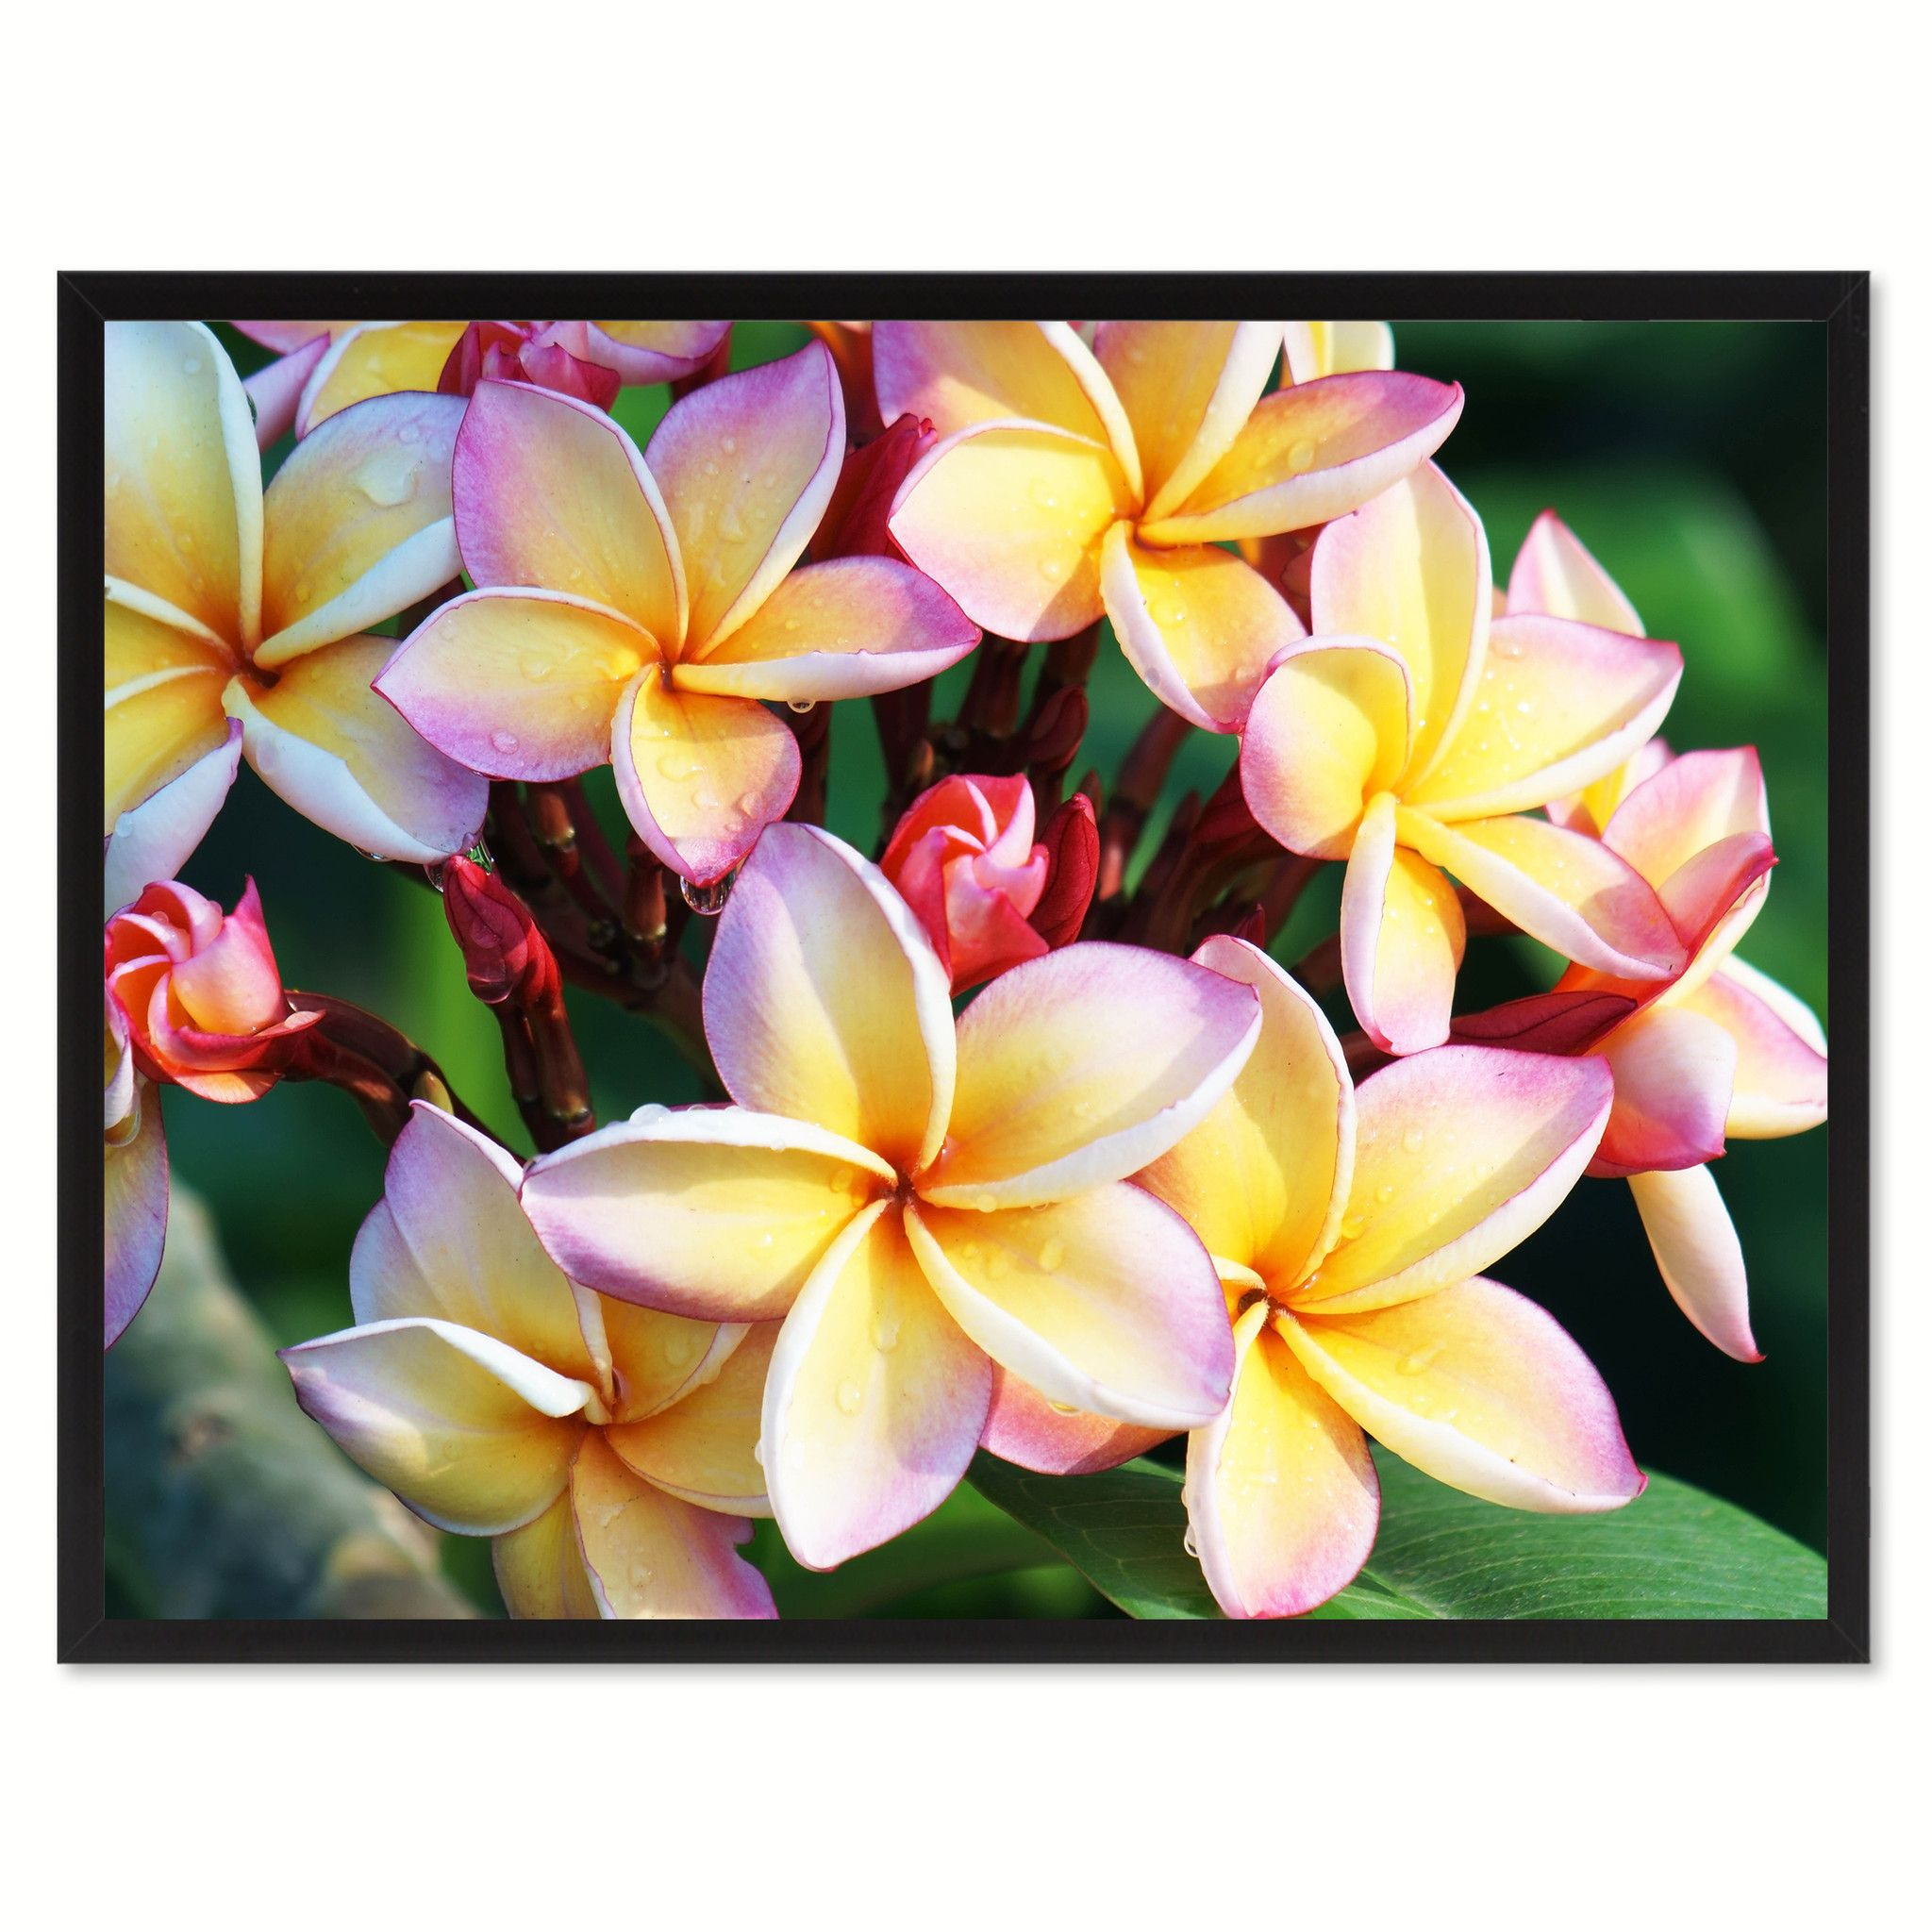 Plumeria Flower Framed Canvas Print Home Décor Wall Art | Framed ...